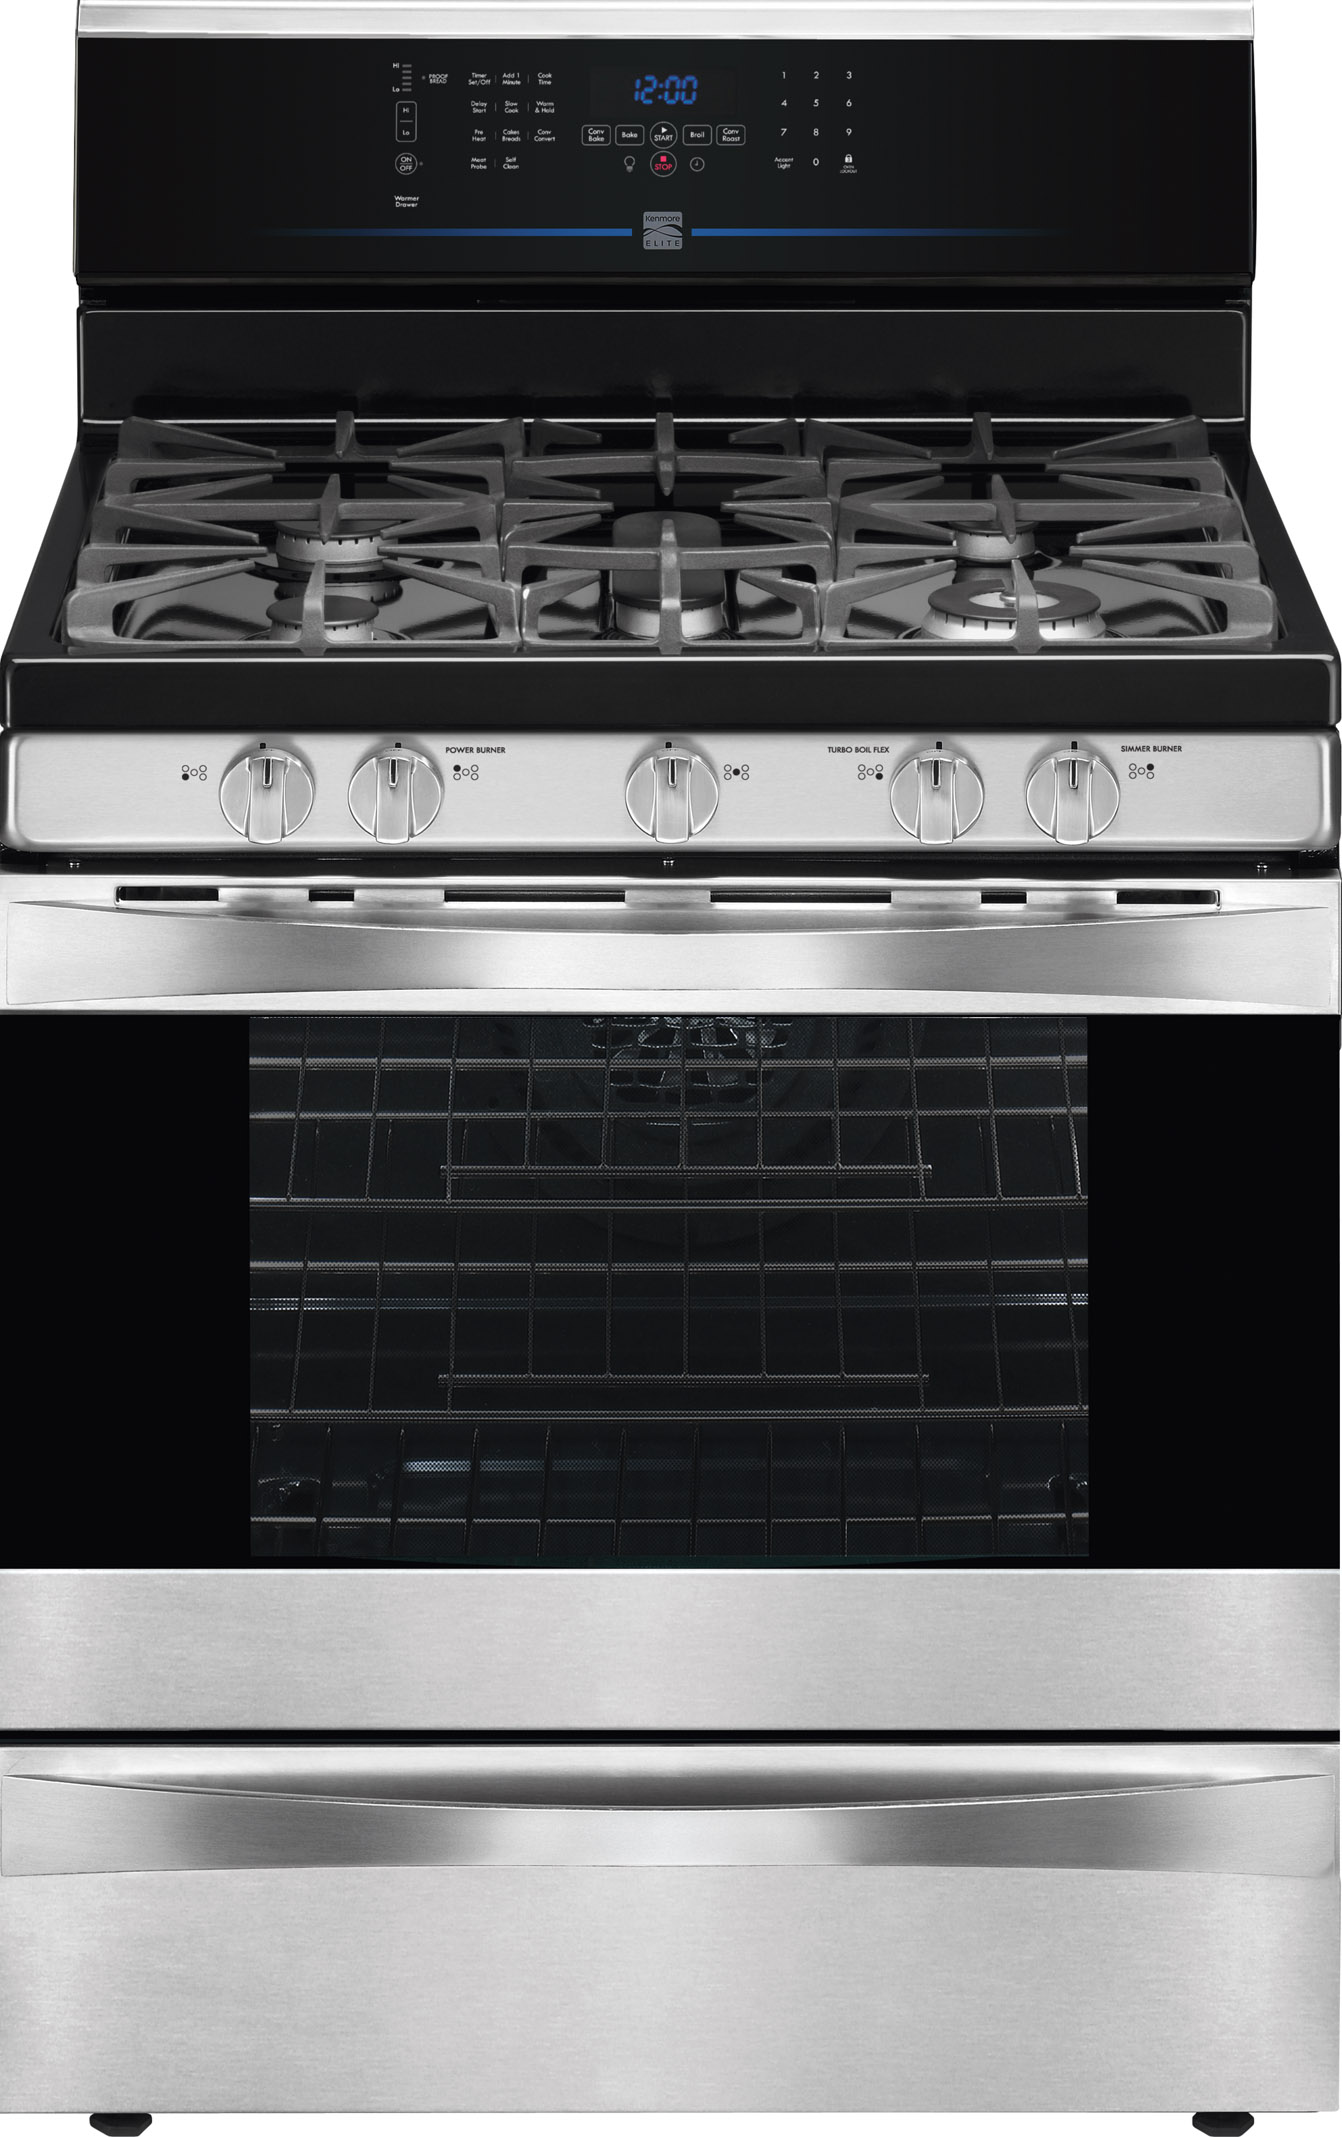 Kenmore-Elite-75333-5-6-cu-ft-Gas-Range-w-True-Convection-Stainless-Steel